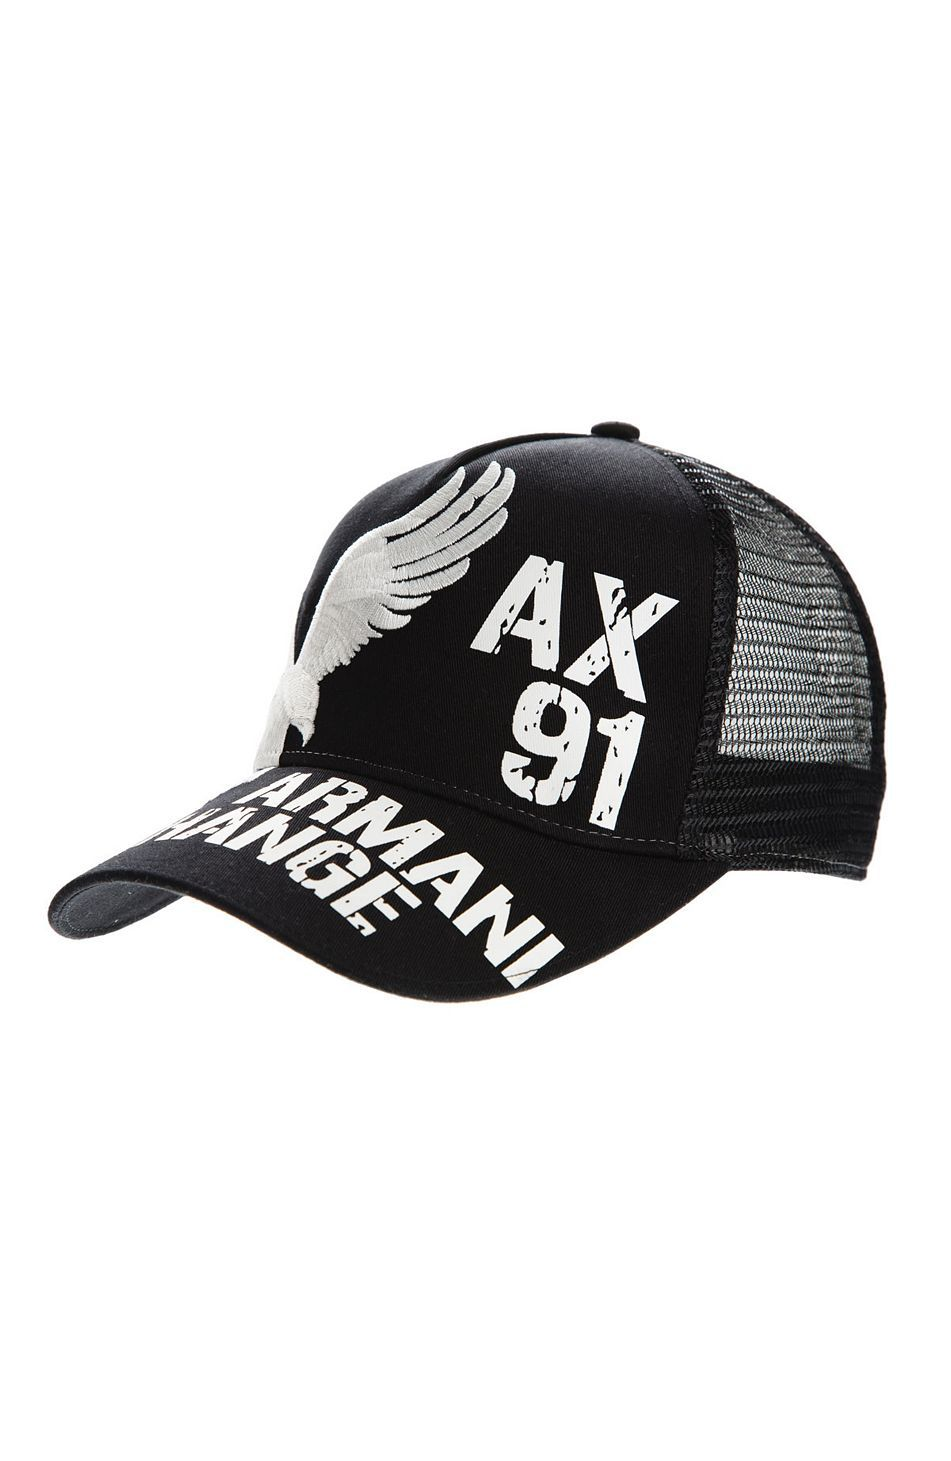 Eagle Baseball Hat - Hats - Accessories - Armani Exchange  05d4312854ad